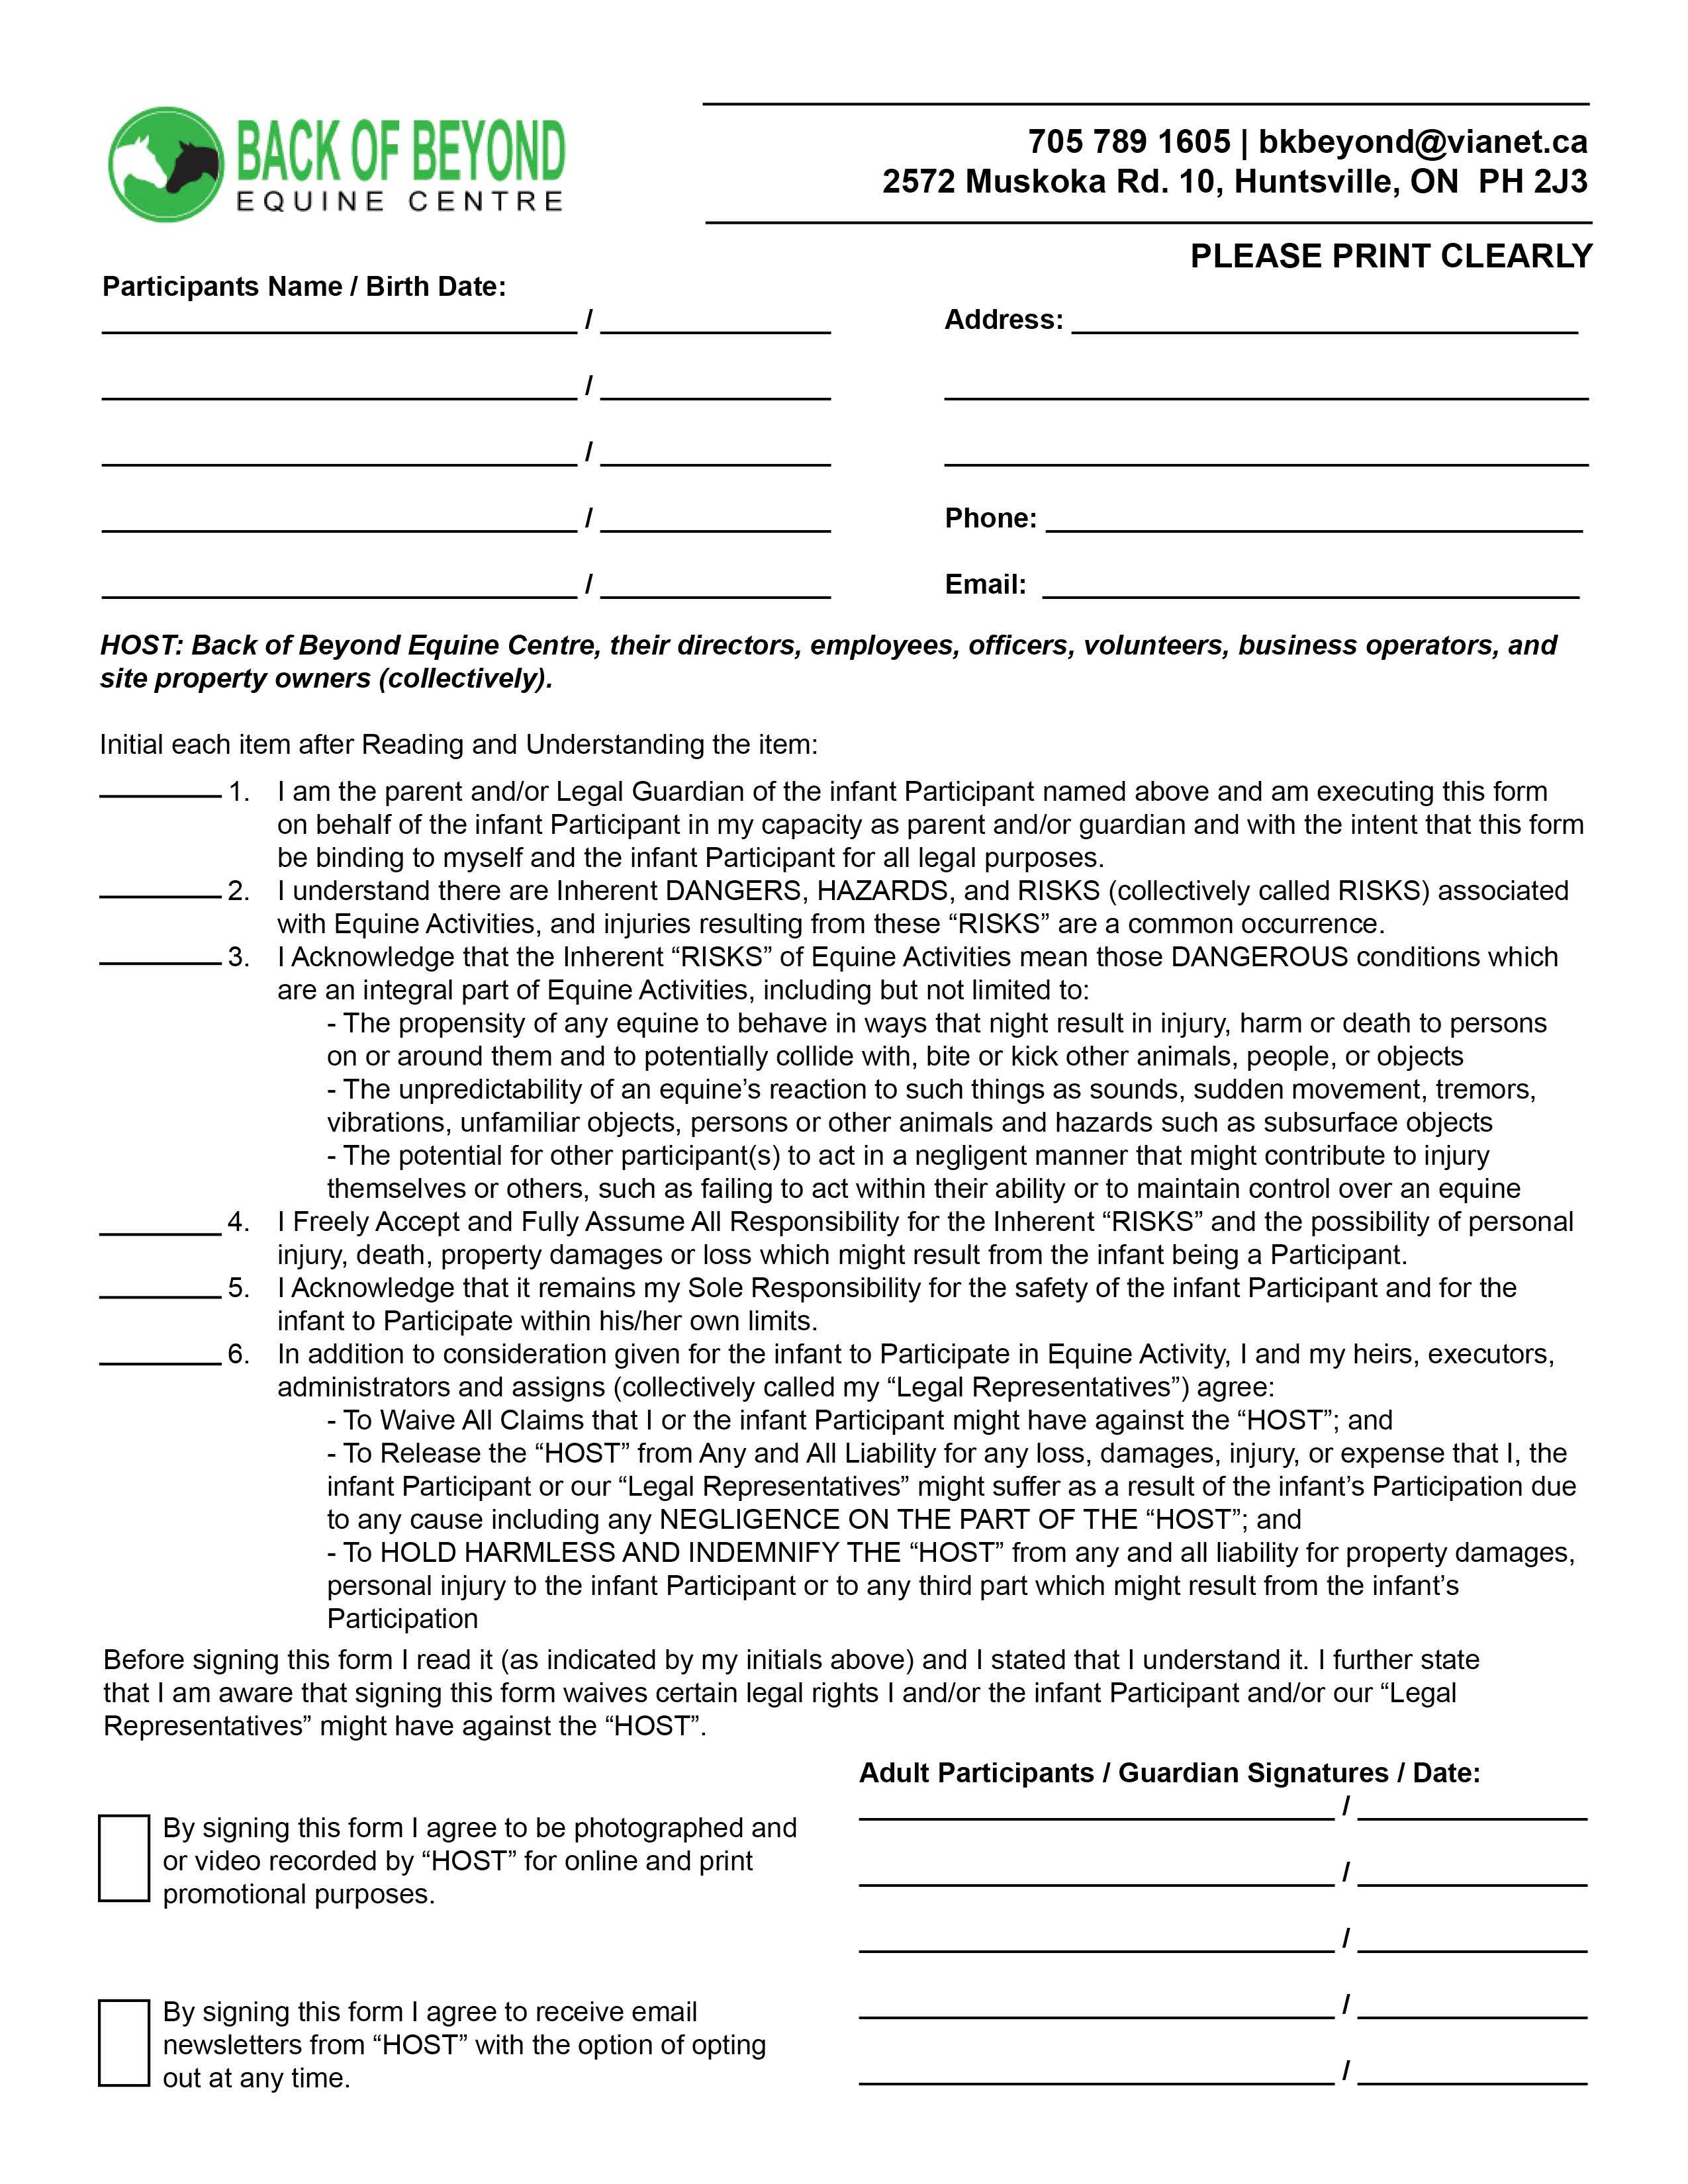 Ohio Equine Liability Release Form